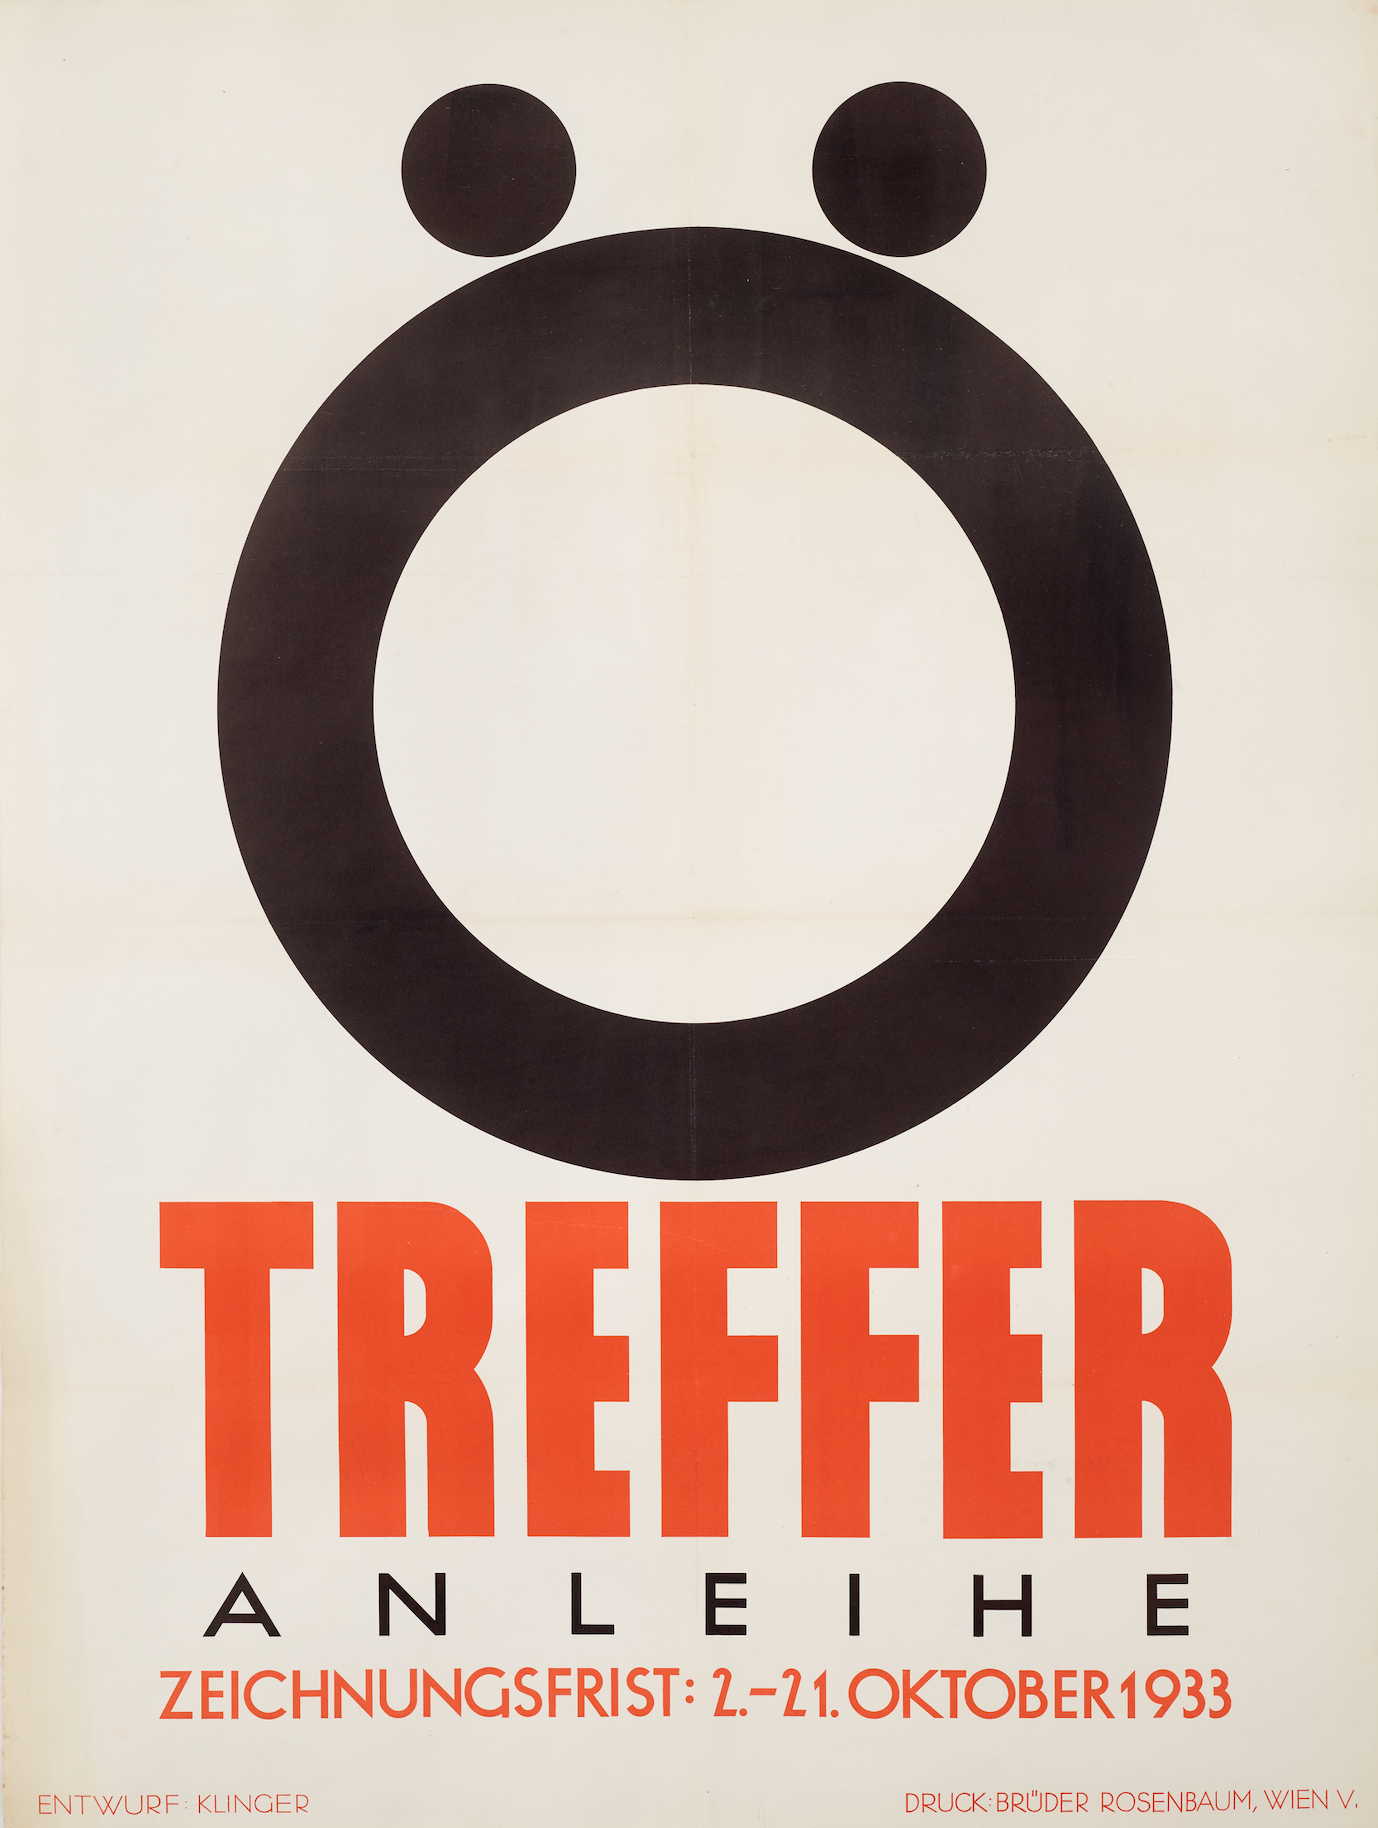 lithographic poster of a giant O with an umlaut over it on a white background